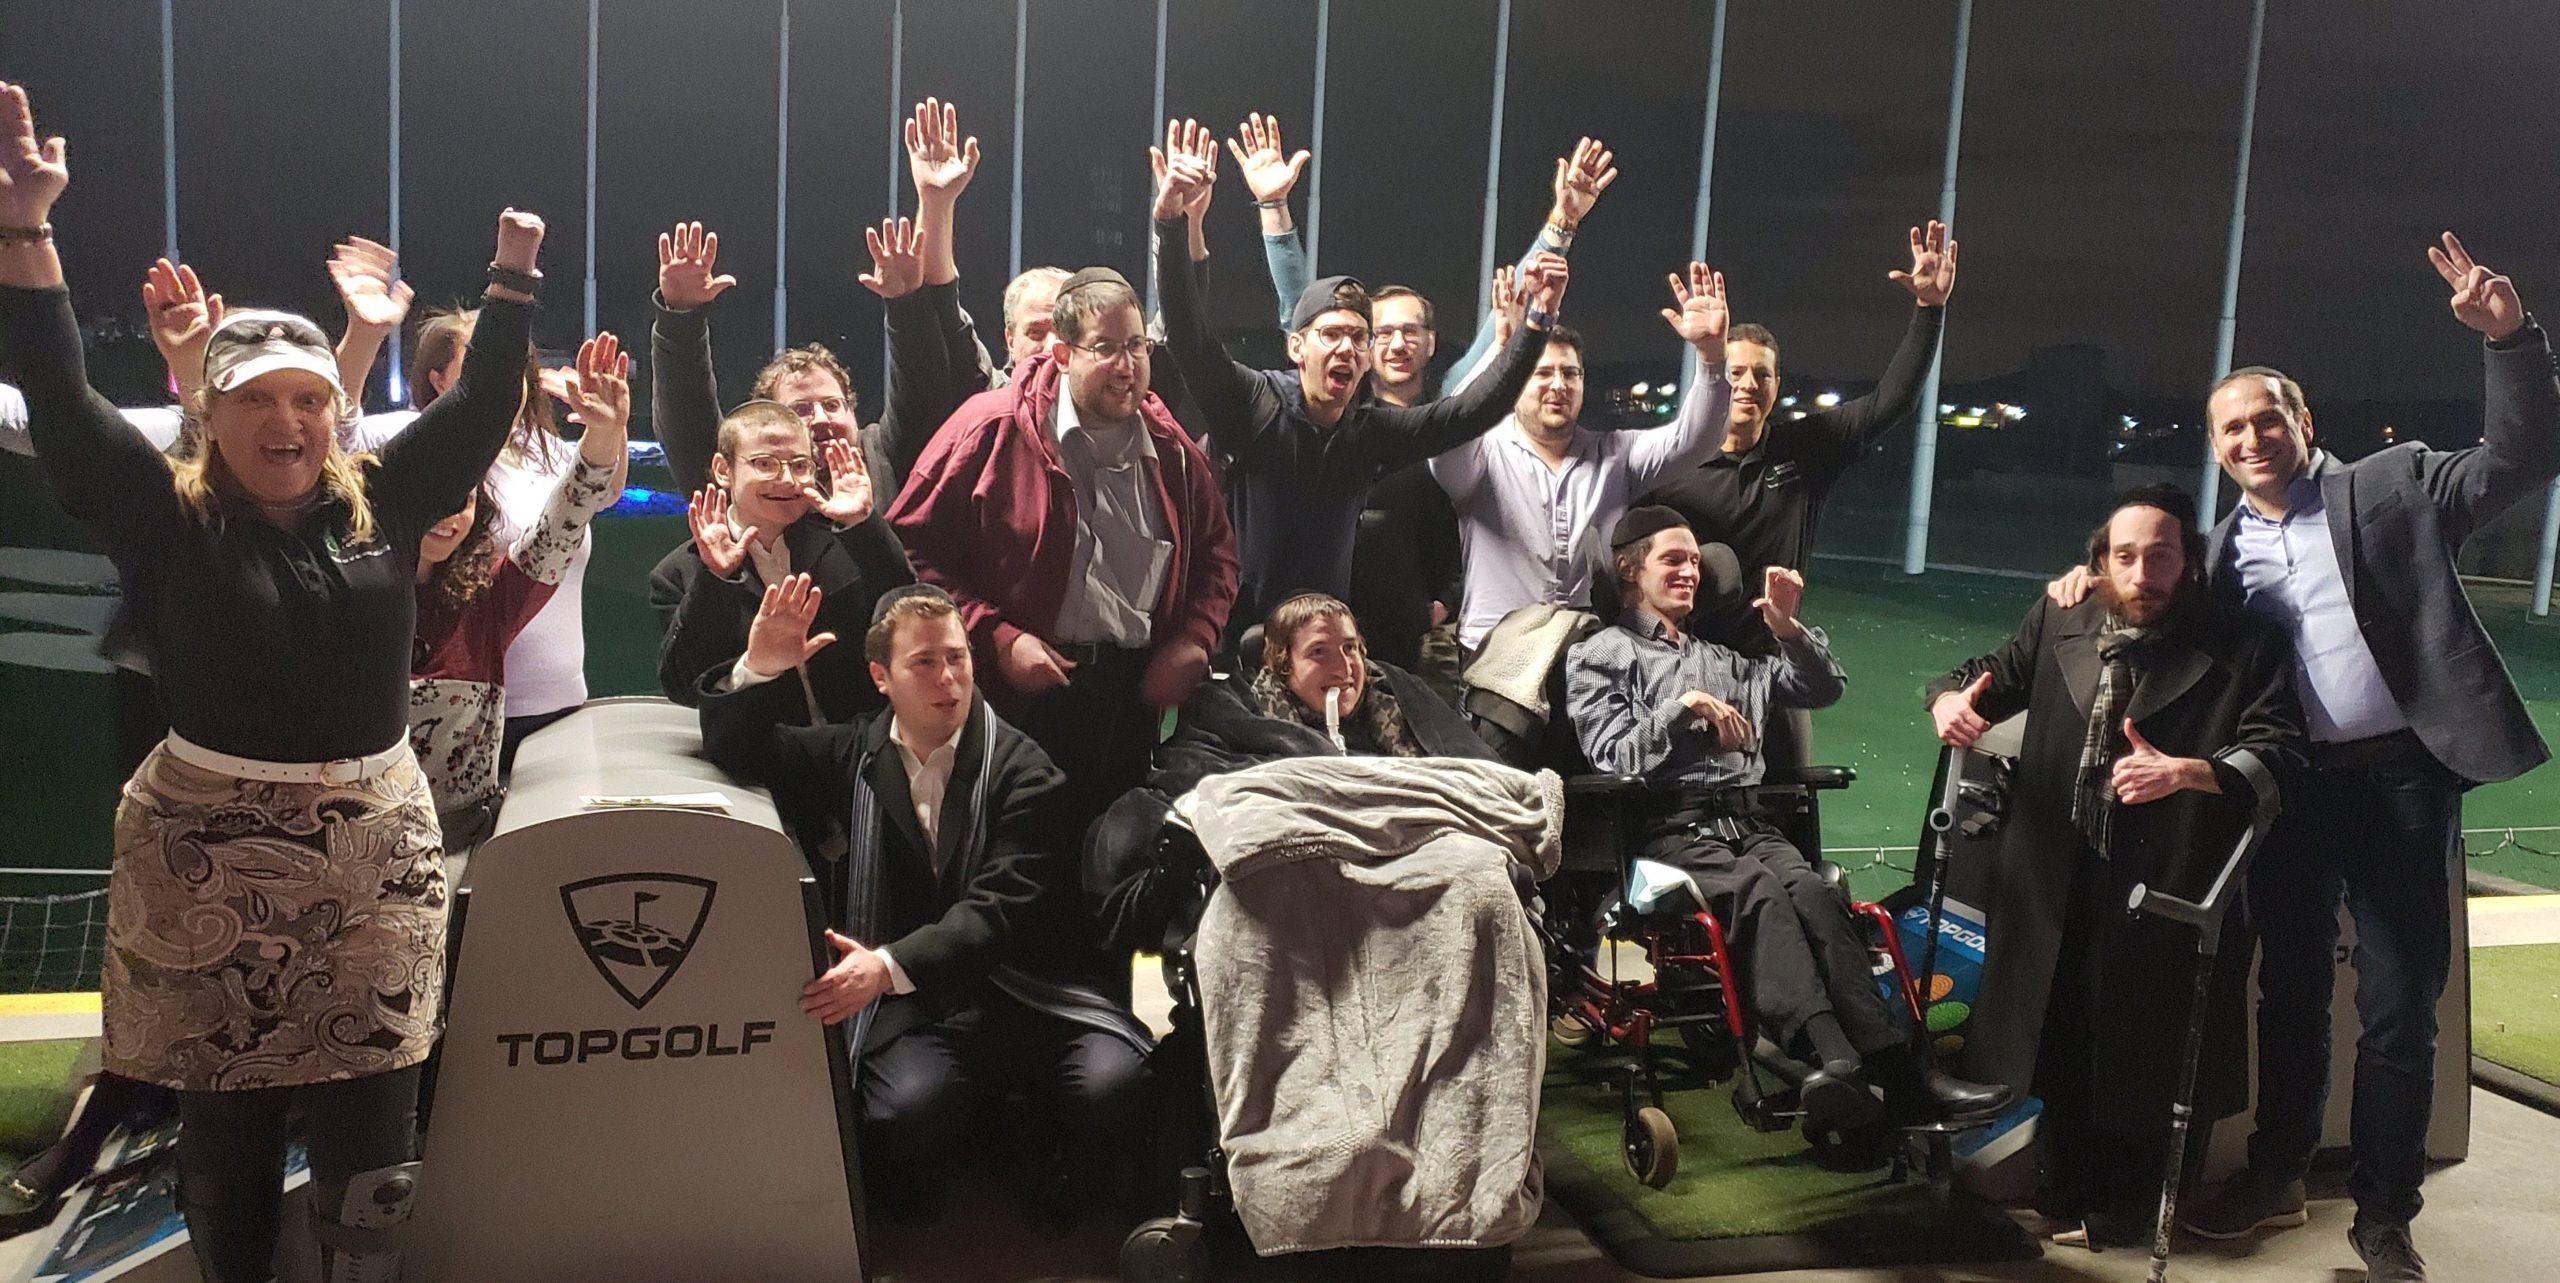 group of adaptive golfers with their hands in the air at a driving range